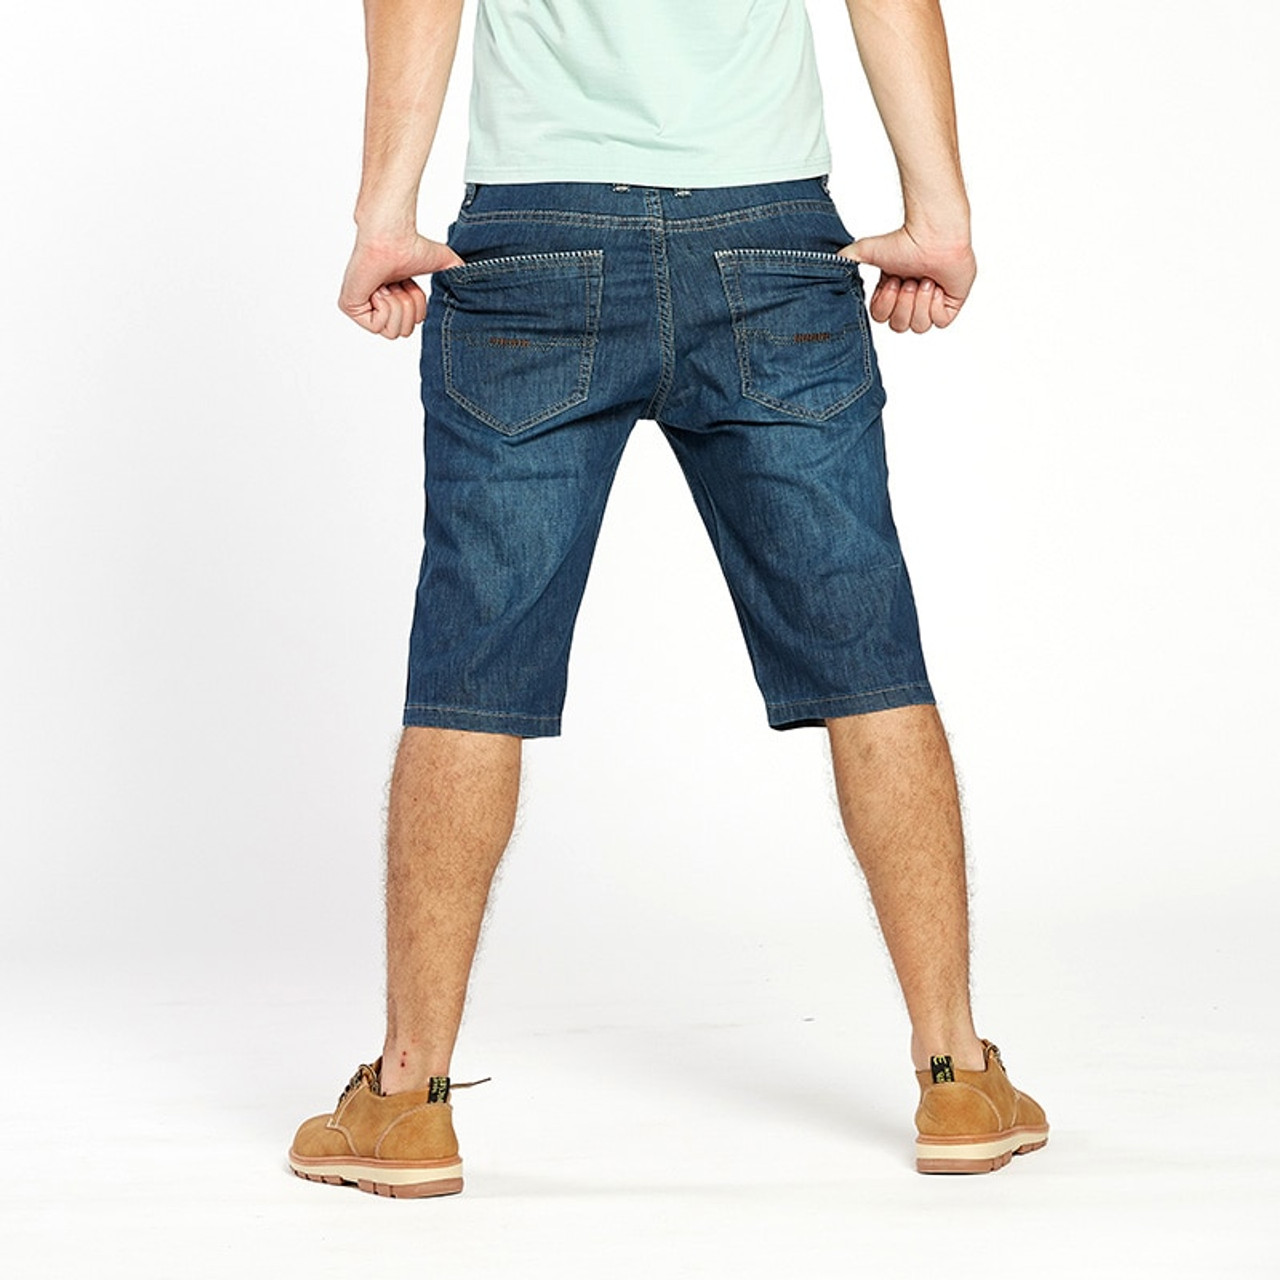 32aa88deaa352 ... Drizzte Summer Fashion Mens Jeans Stretch Denim Plus Size Jeans Shorts  Pants Trouser Size 42 44 ...